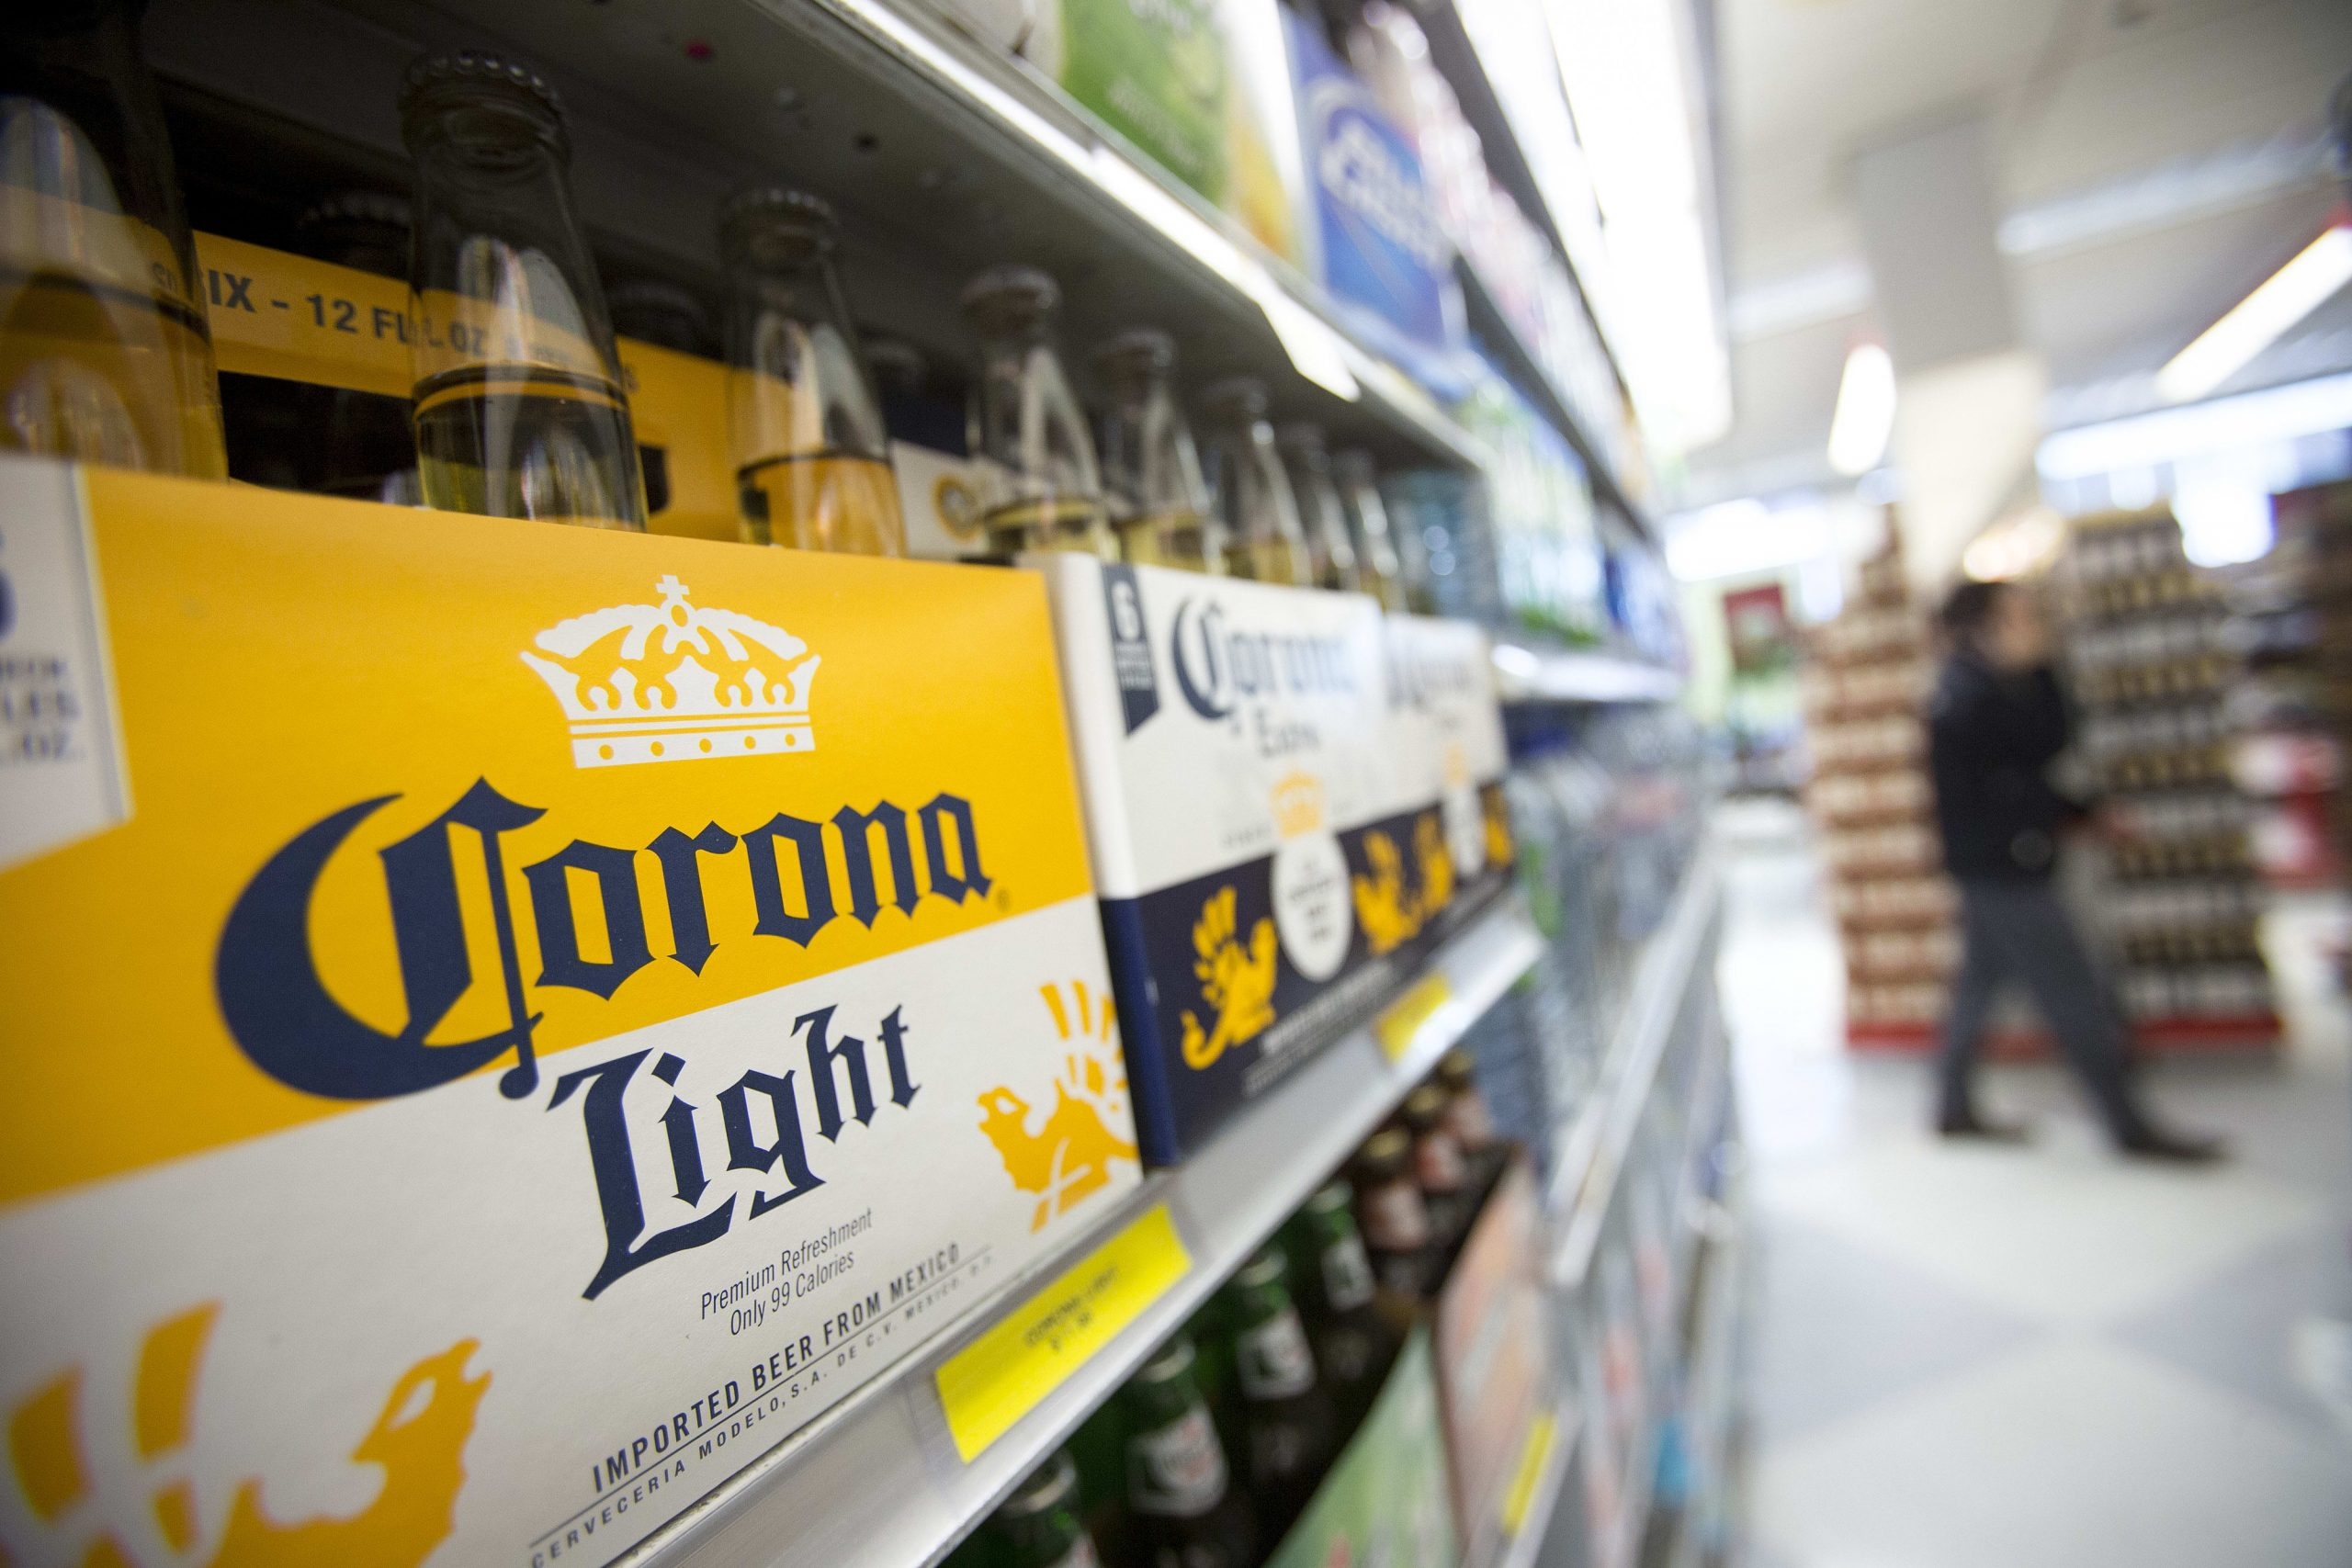 Corona seltzer will launch in spring 2020 with a $40 million push from Constellation Brands